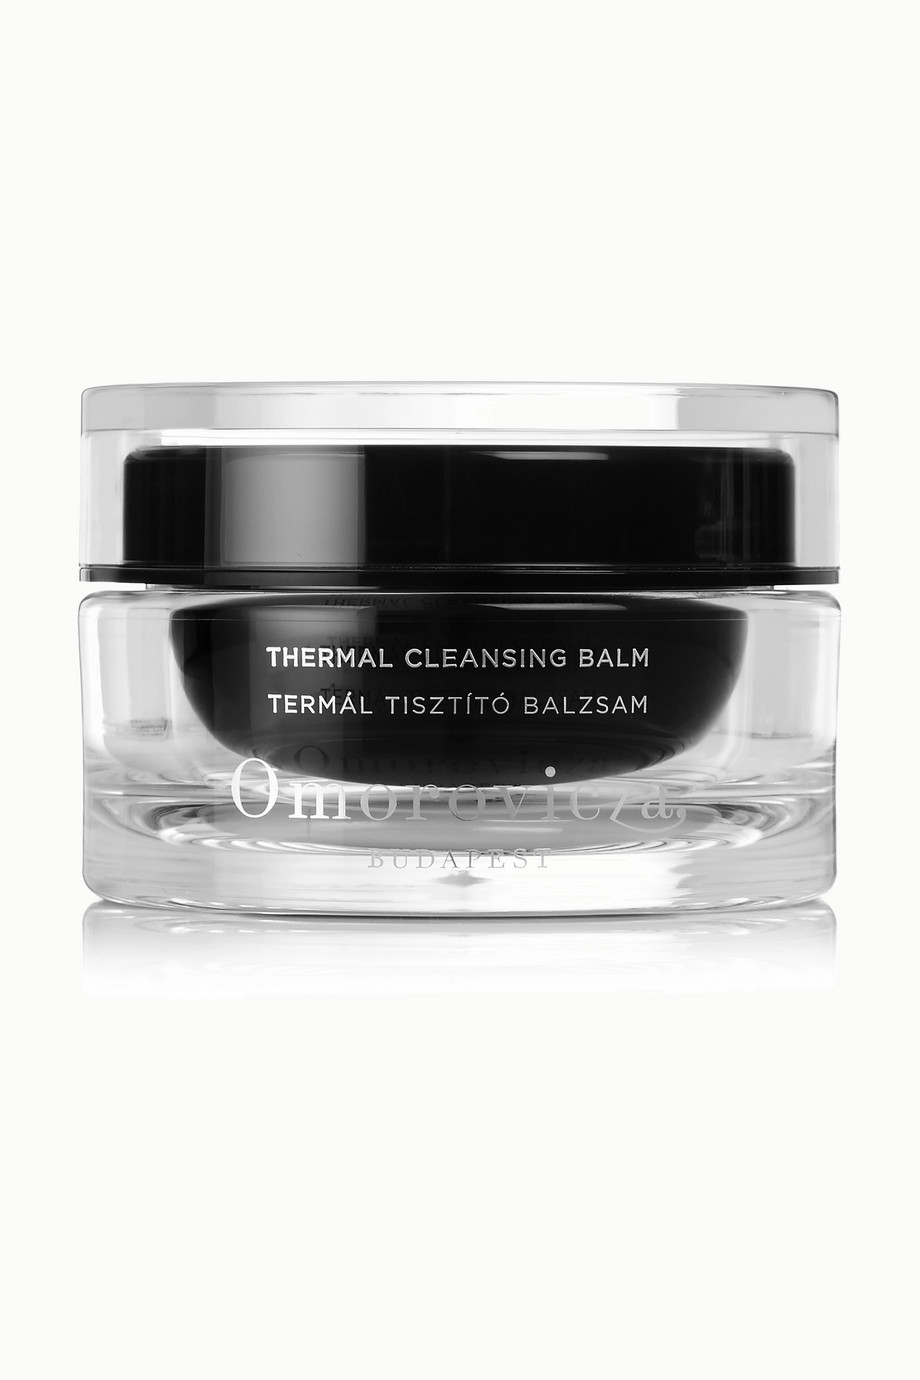 Omorovicza Thermal Cleansing Balm, 100ml